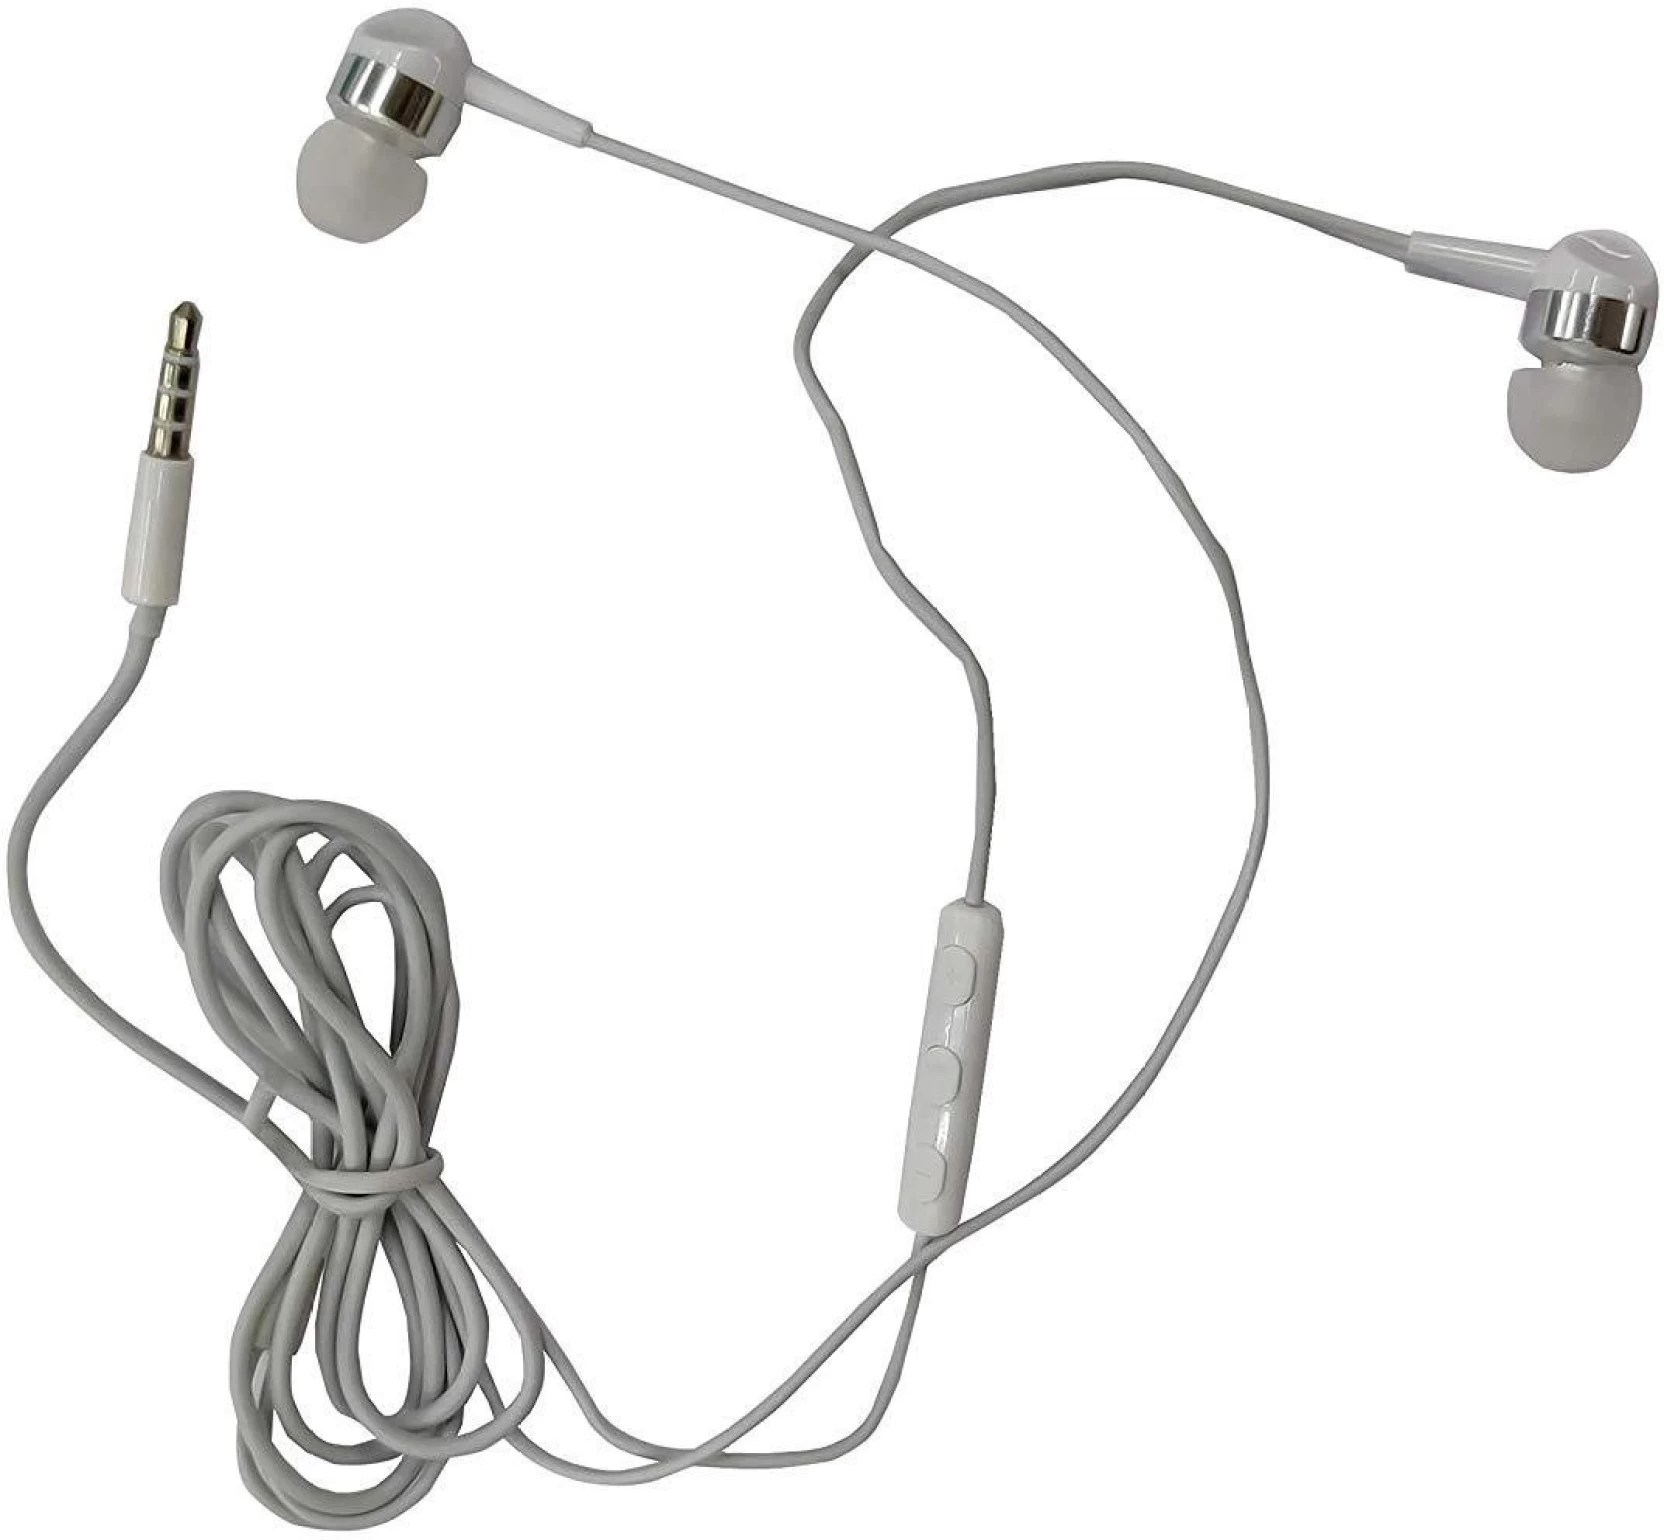 hight resolution of pacificdeals 3 5mm earphone for asus zenfone 4 zenfone 5 zenfone 6 black wired headset with mic white in the ear